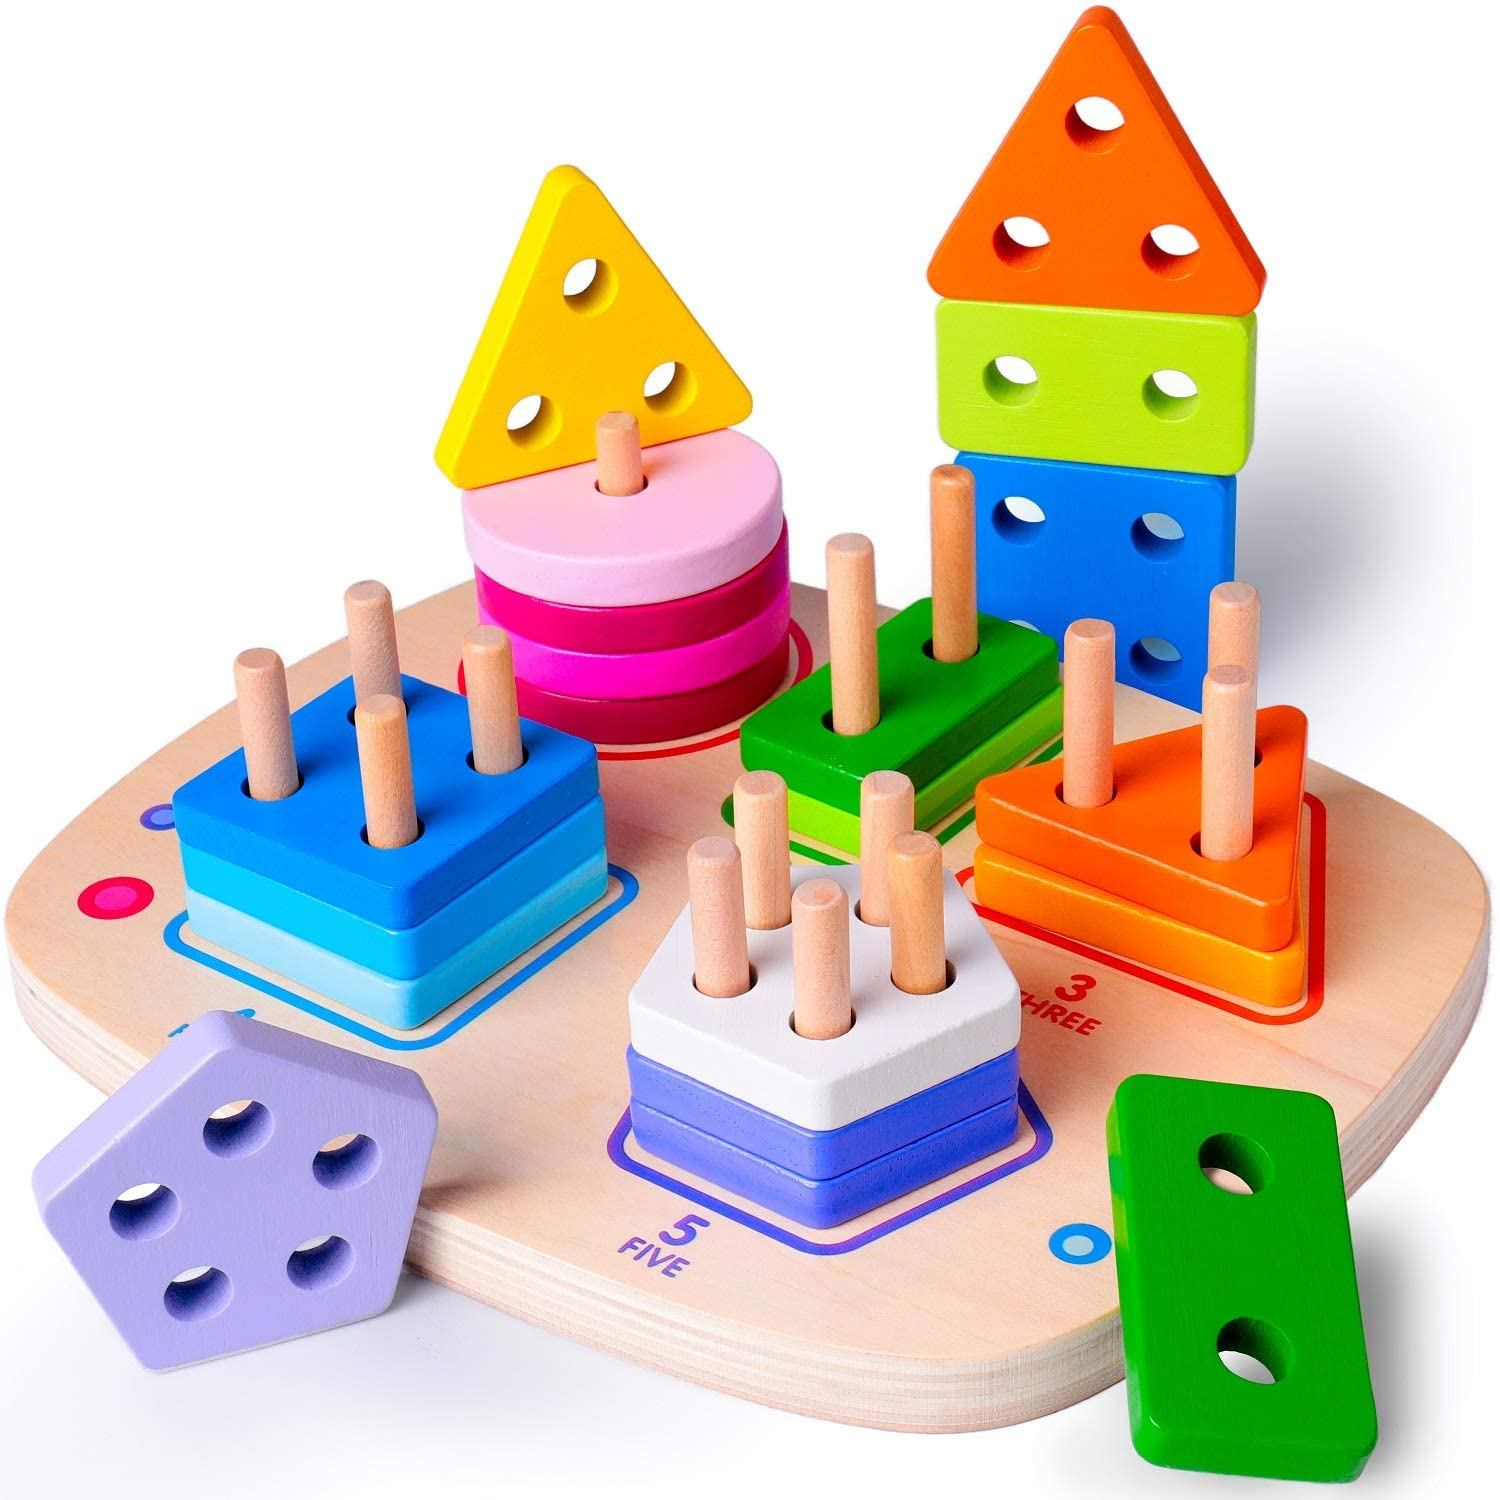 Wooden Educational Toys for 1 2 3 4 Year Old Boys Girls ...